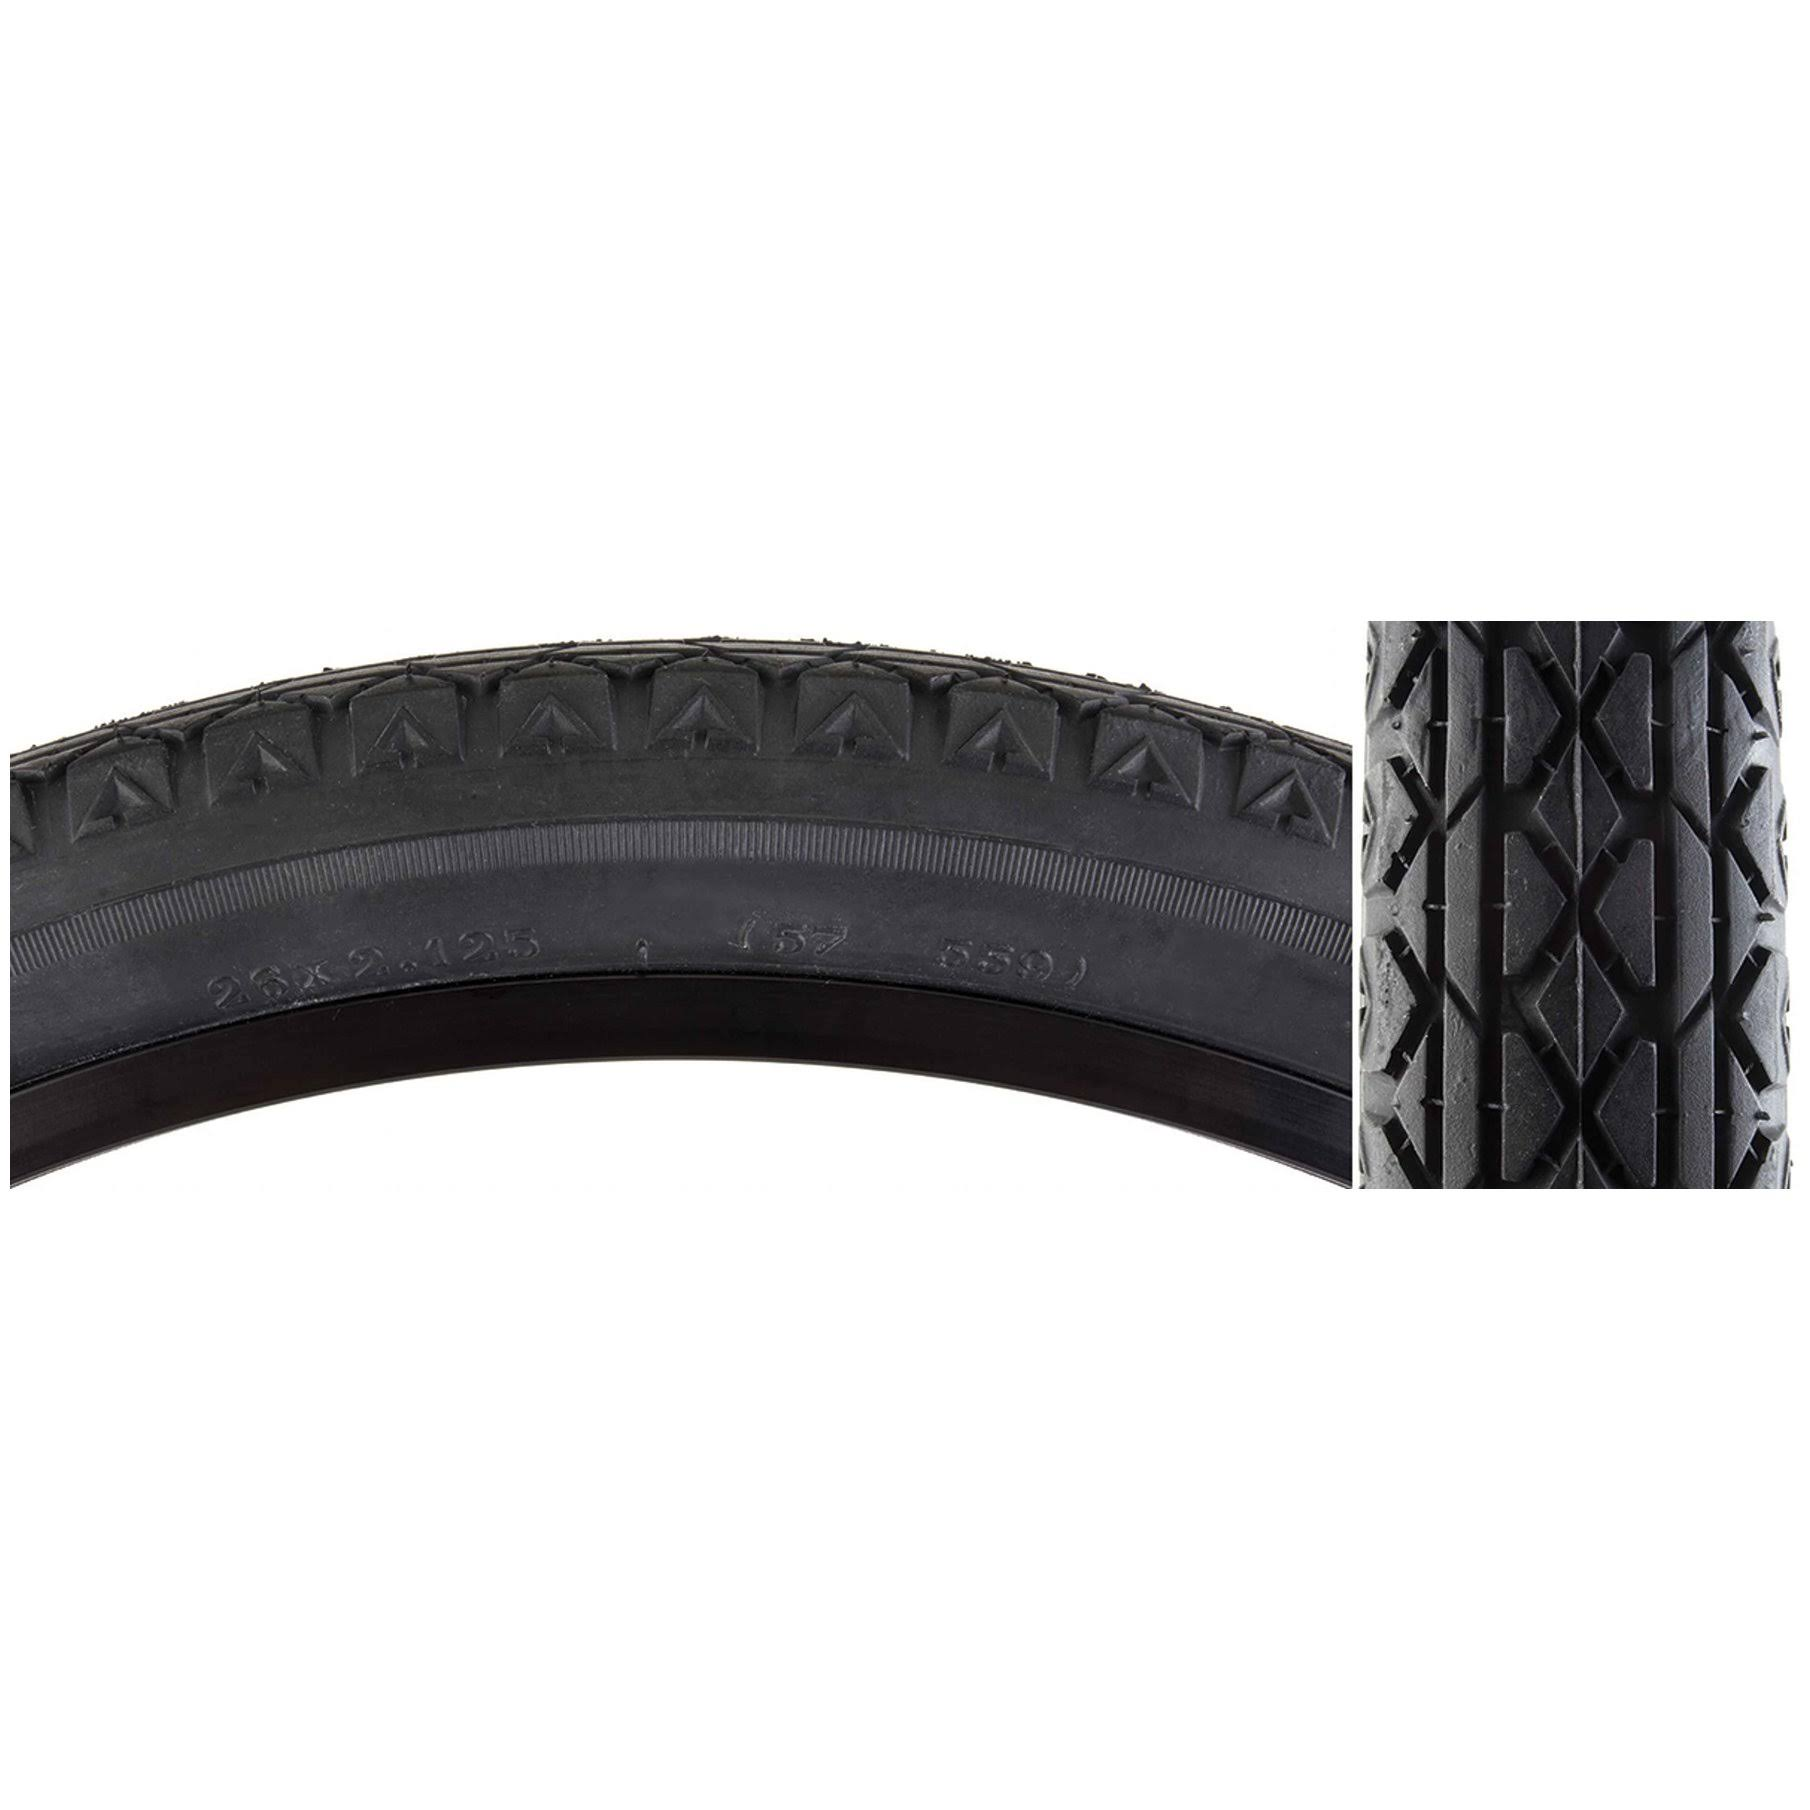 "Sunlite Cruiser V52 Tire - Black, 26"" x 2.125"""